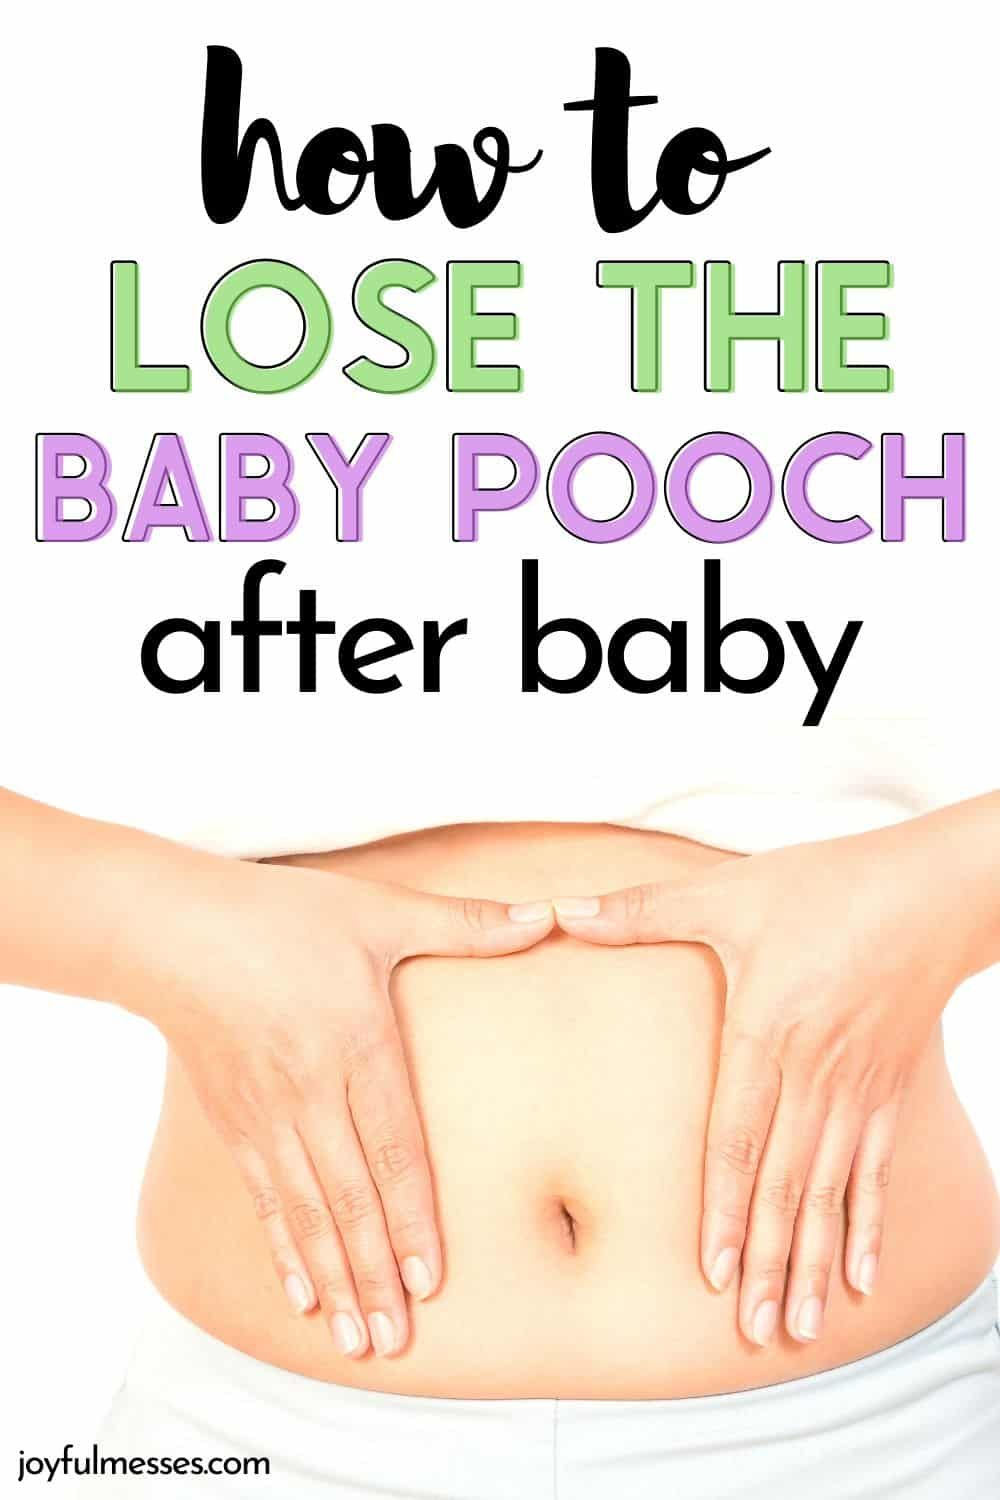 6c4d2cdc2ee36b2e208d230c22a4e8ec - How To Get Rid Of A Baby Belly Fast